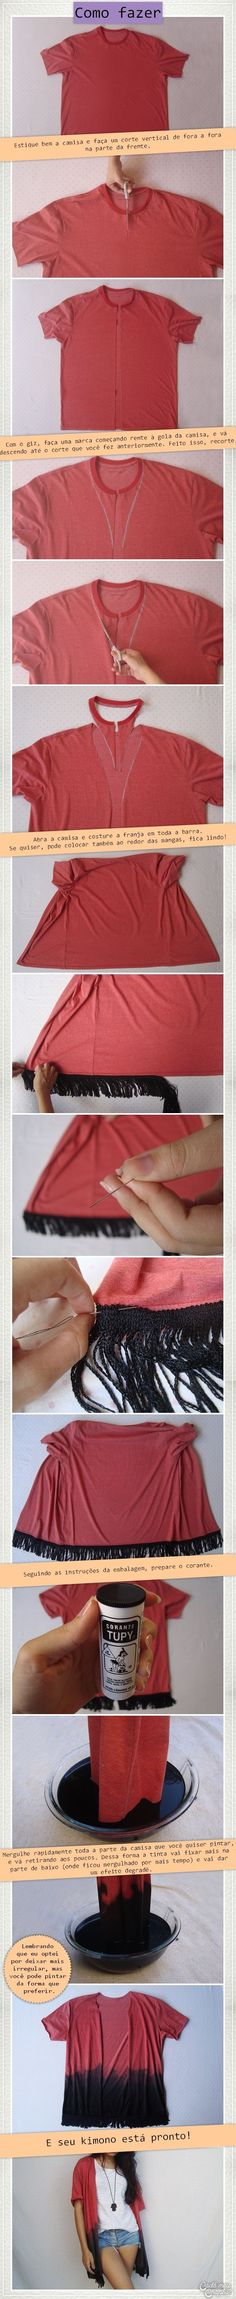 DIY Kimono fashion This is awesome Kimono Fashion, Diy Fashion, Ideias Fashion, Fashion Check, Fashion Ideas, Trendy Fashion, Fashion Trends, Diy Clothing, Sewing Clothes